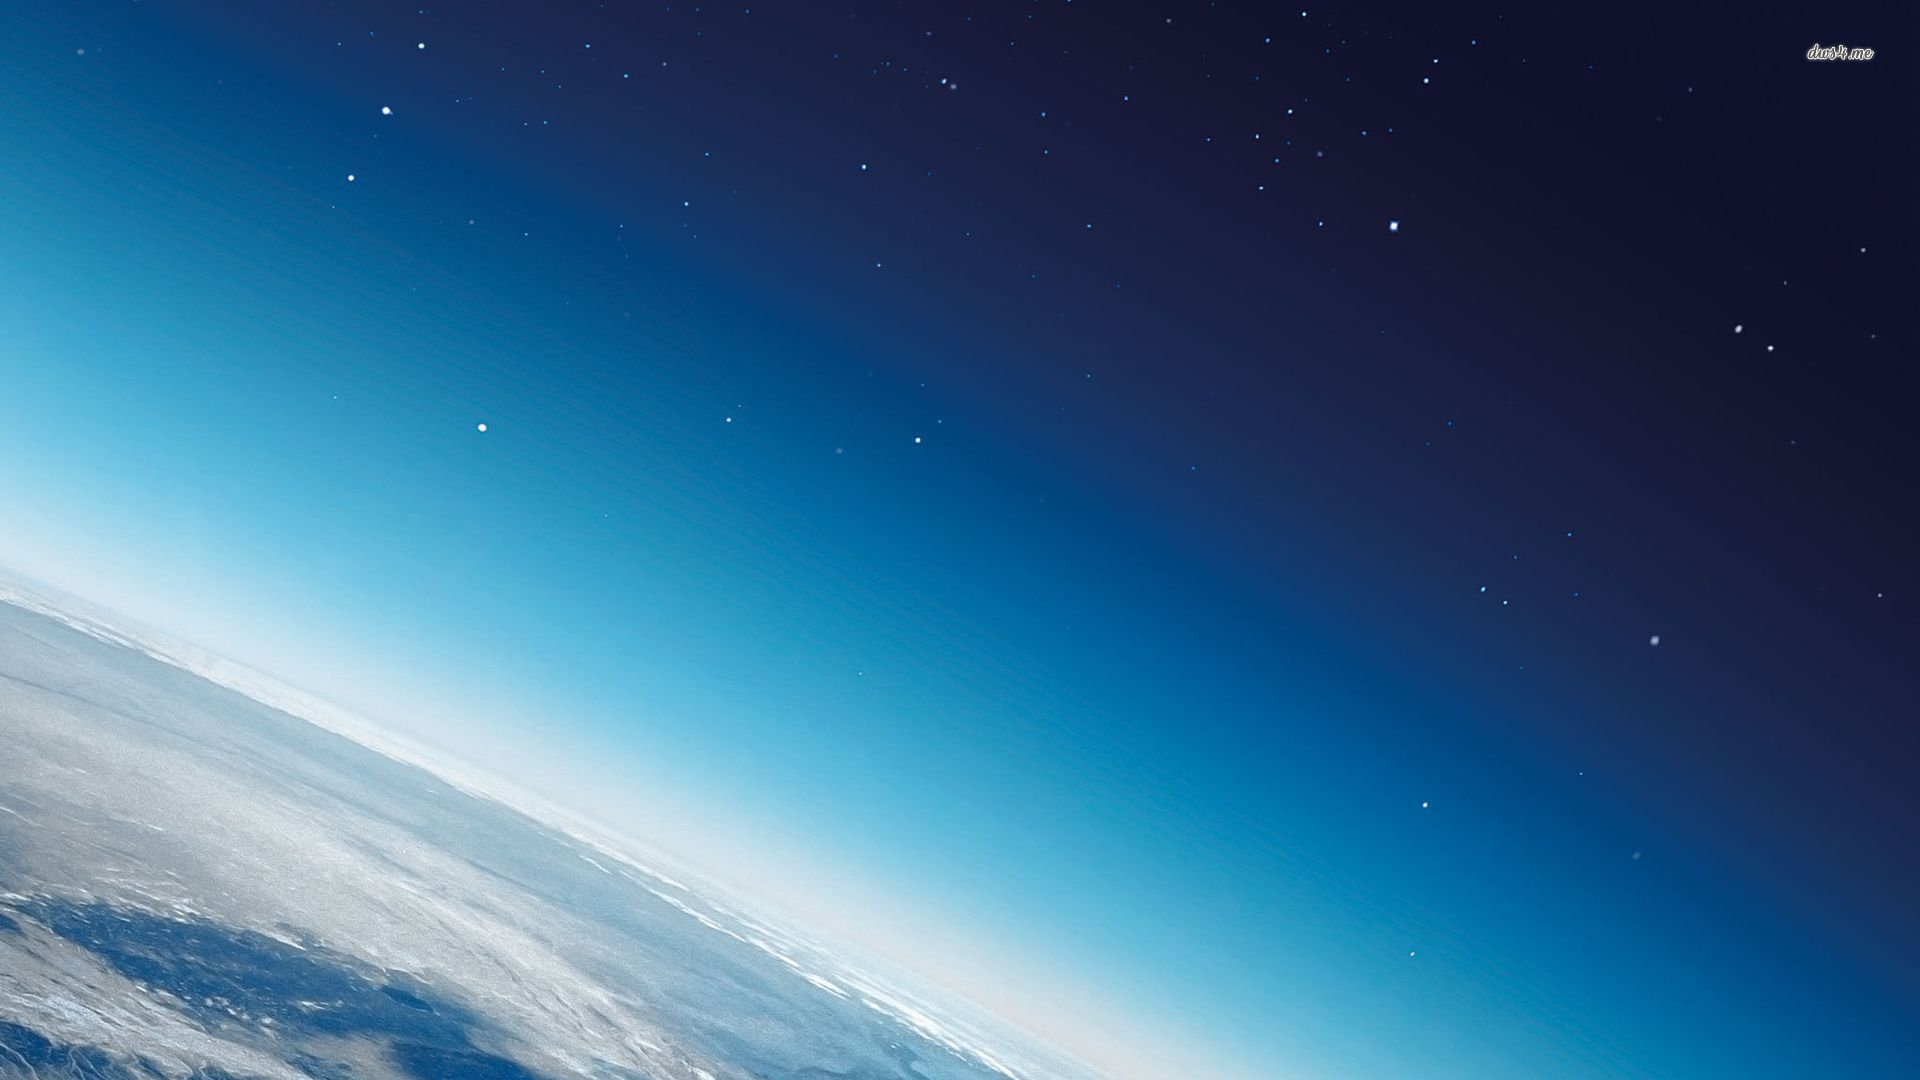 ... Earth's atmosphere wallpaper 1920x1080 ...